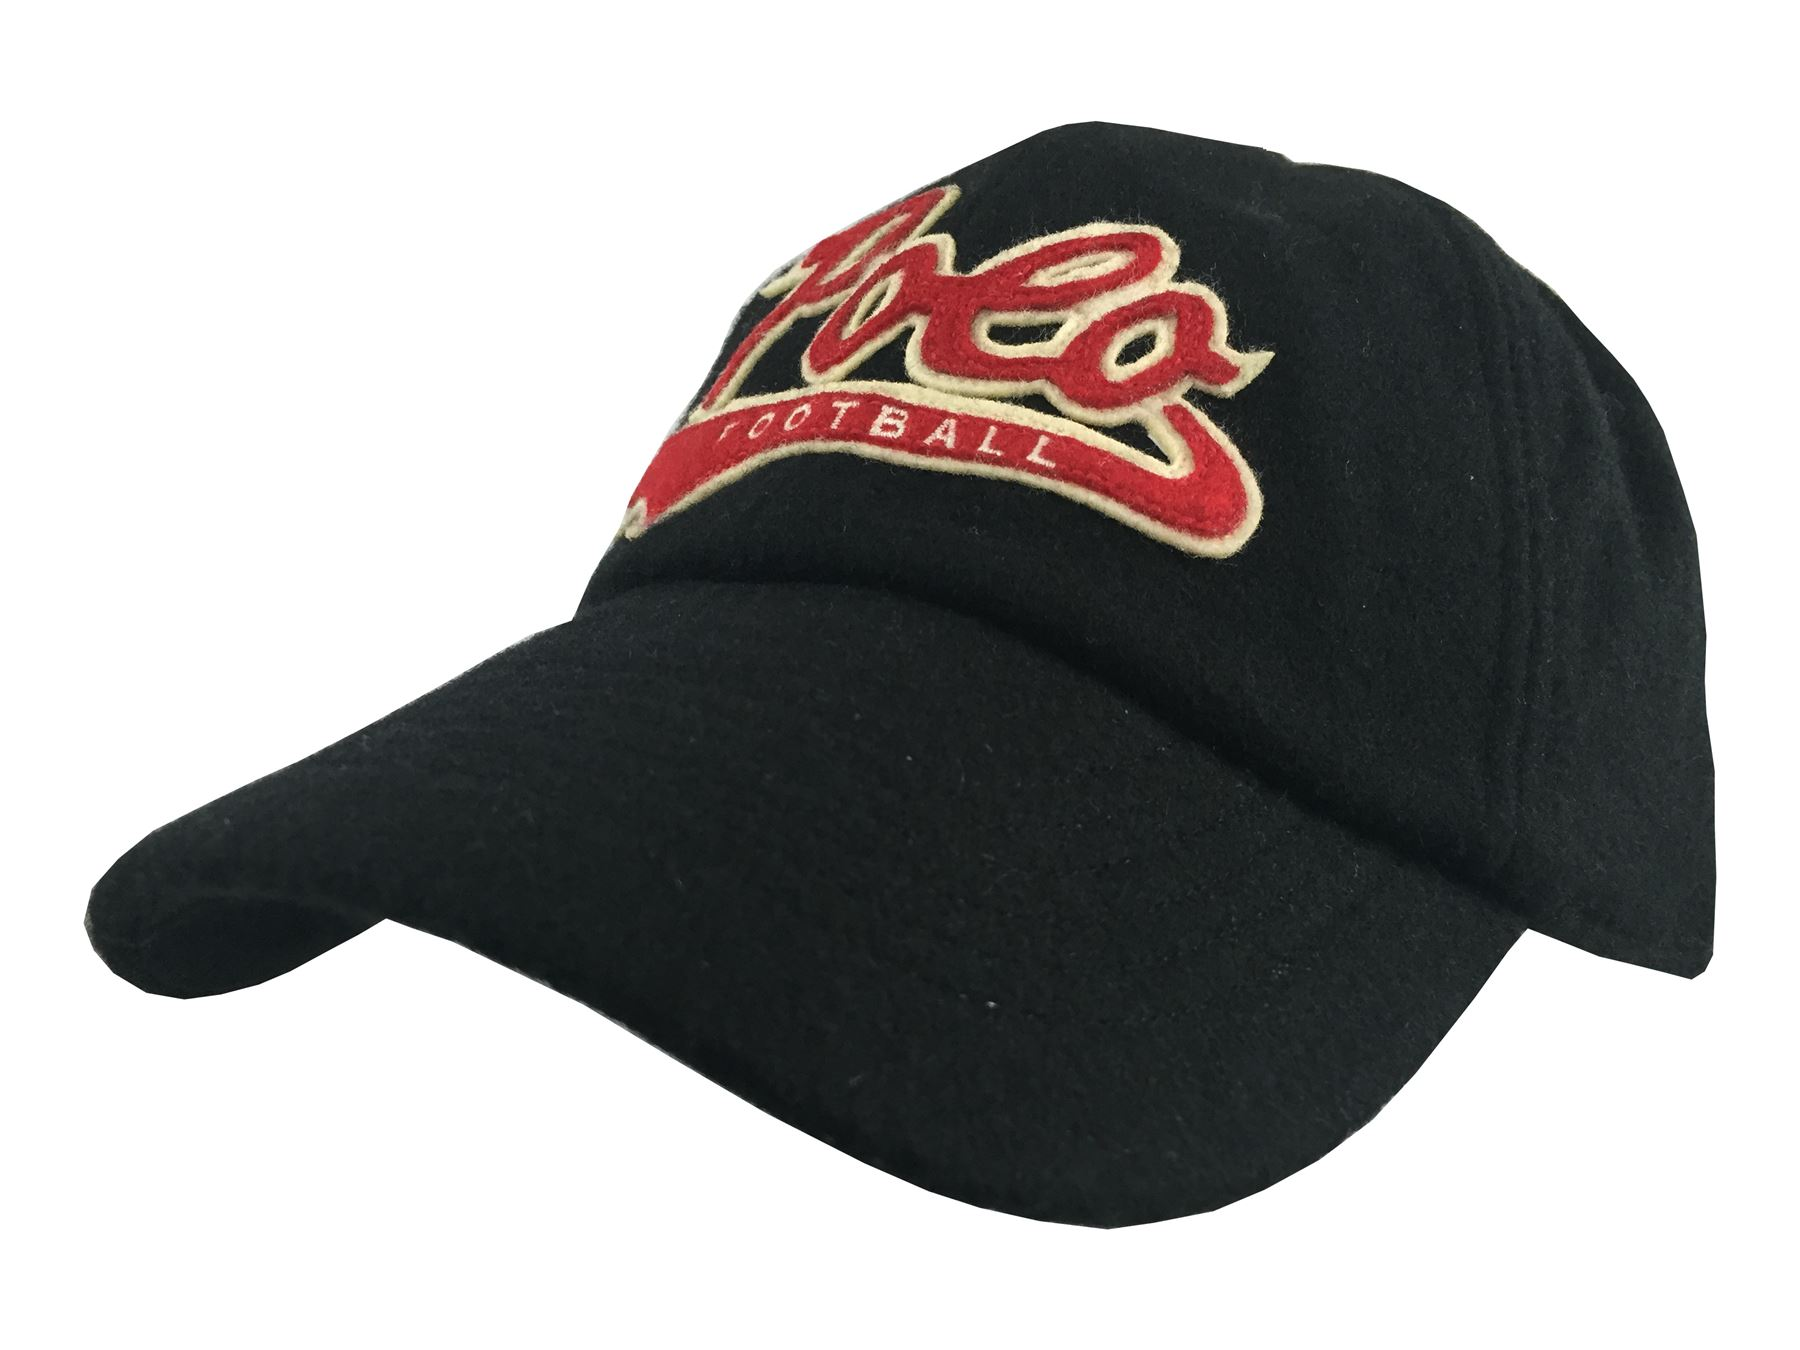 Shop authentic Boston Red Sox merchandise, Red Sox ALCS Apparel and Red Sox Postseason Gear at FansEdge. '47 Boston Red Sox Black Official On Field Postseason Altitude Adjustable Hat. $ browse Red Sox clothing like T-Shirts, Hats and Sweatshirts and show up to the stadium in a classic Boston look.